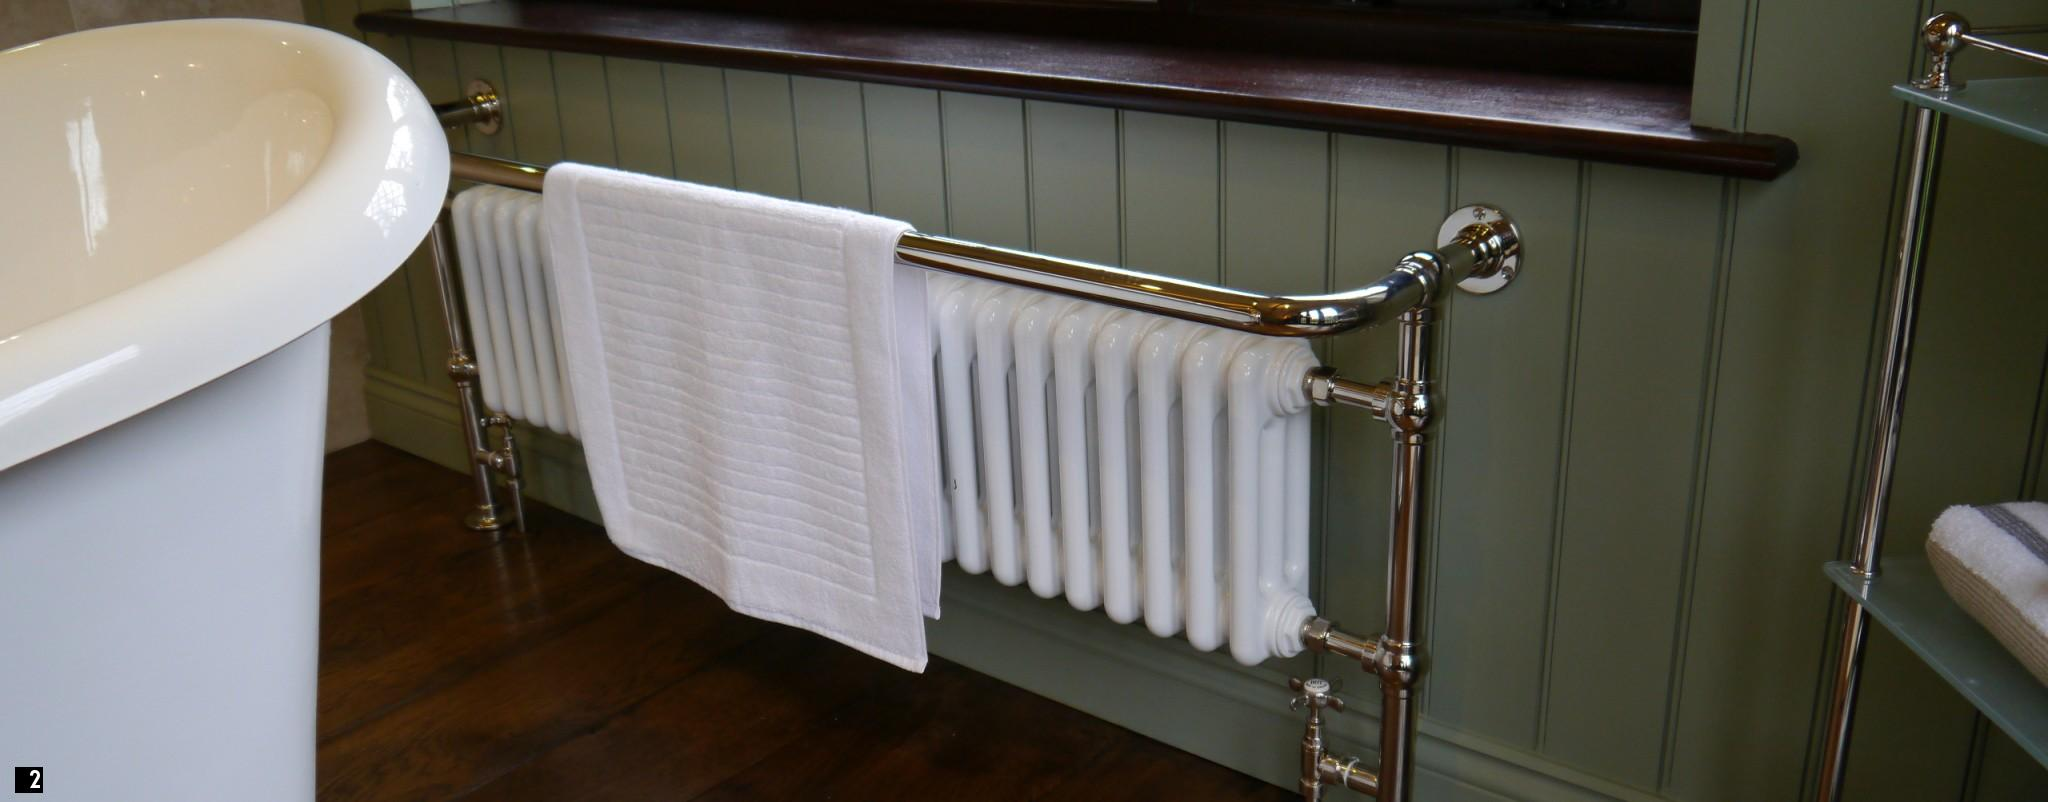 Vintage wall cabinets bathroom - Rails With Radiators Product Categories Chadder Amp Co